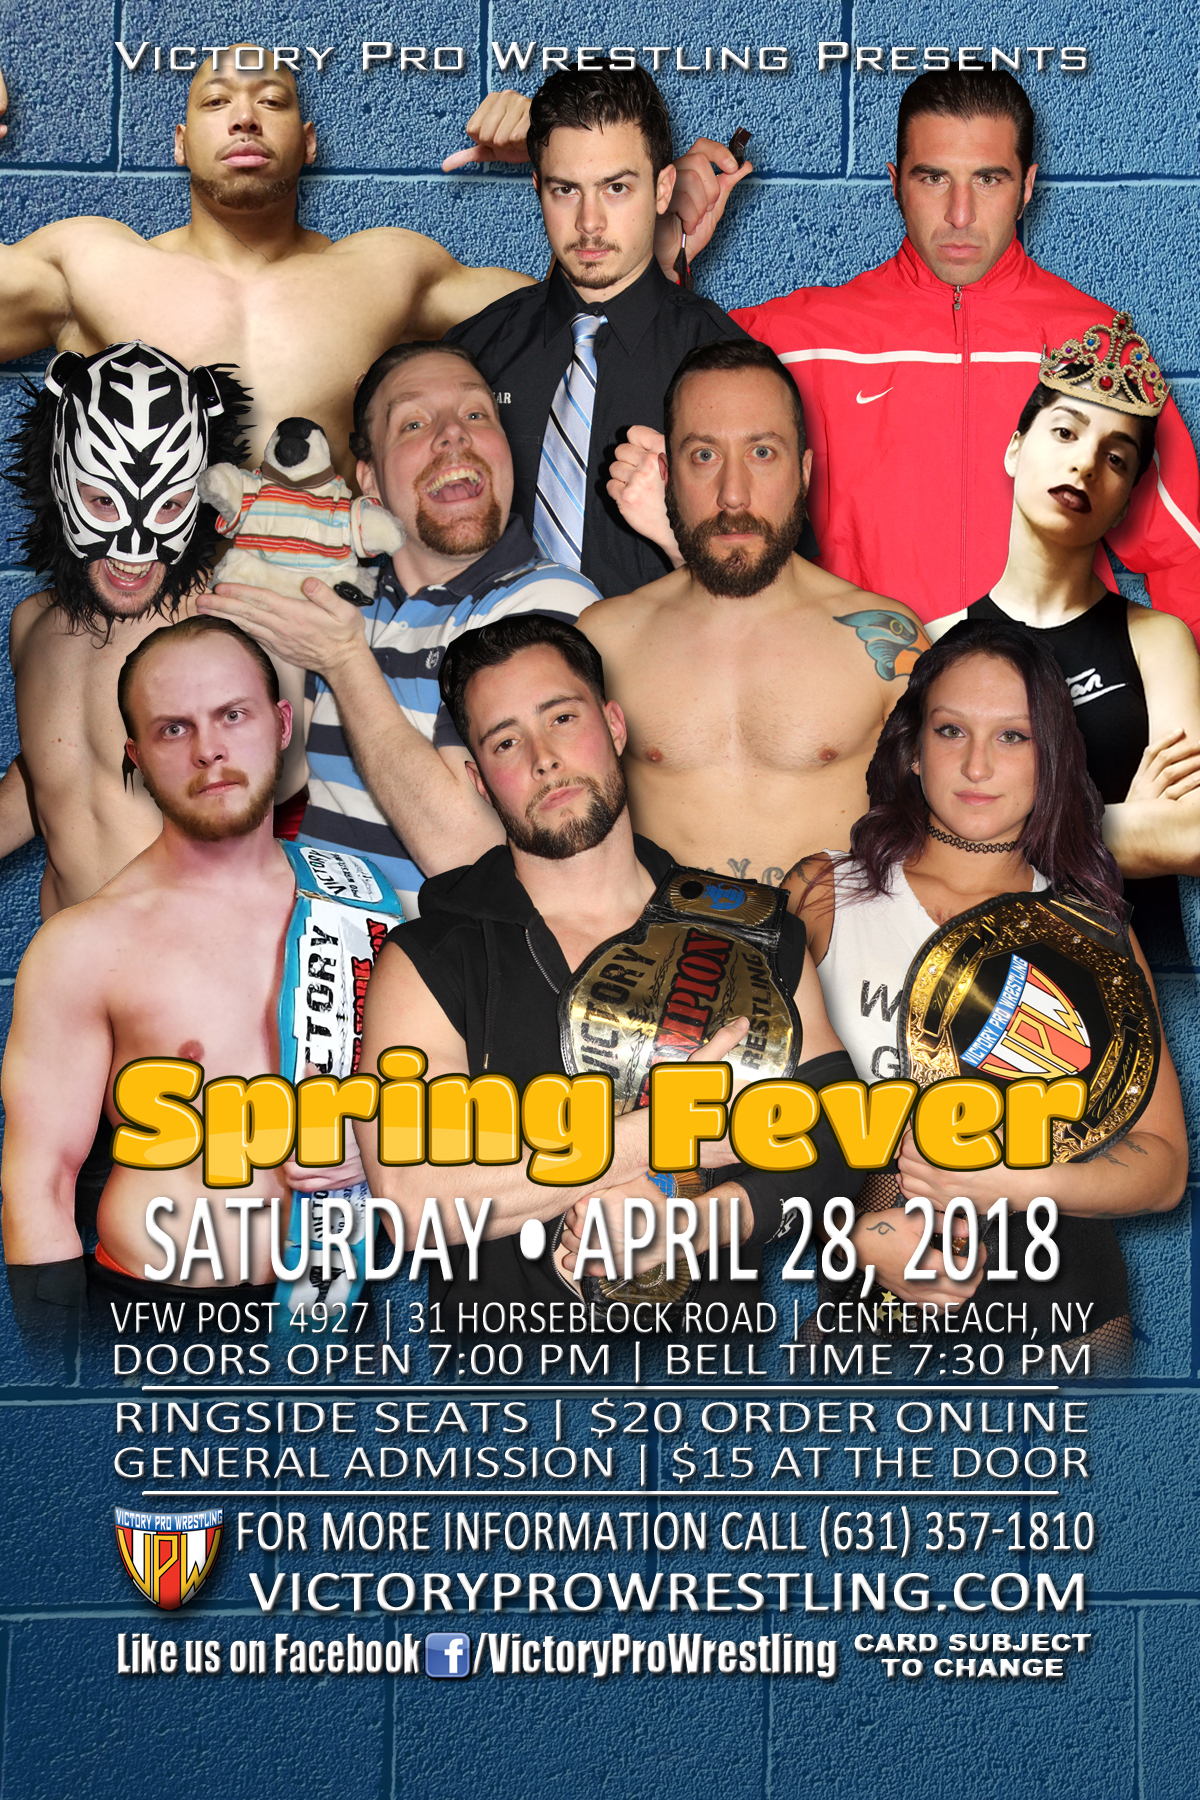 VPW presents Spring Fever, April 28 2018